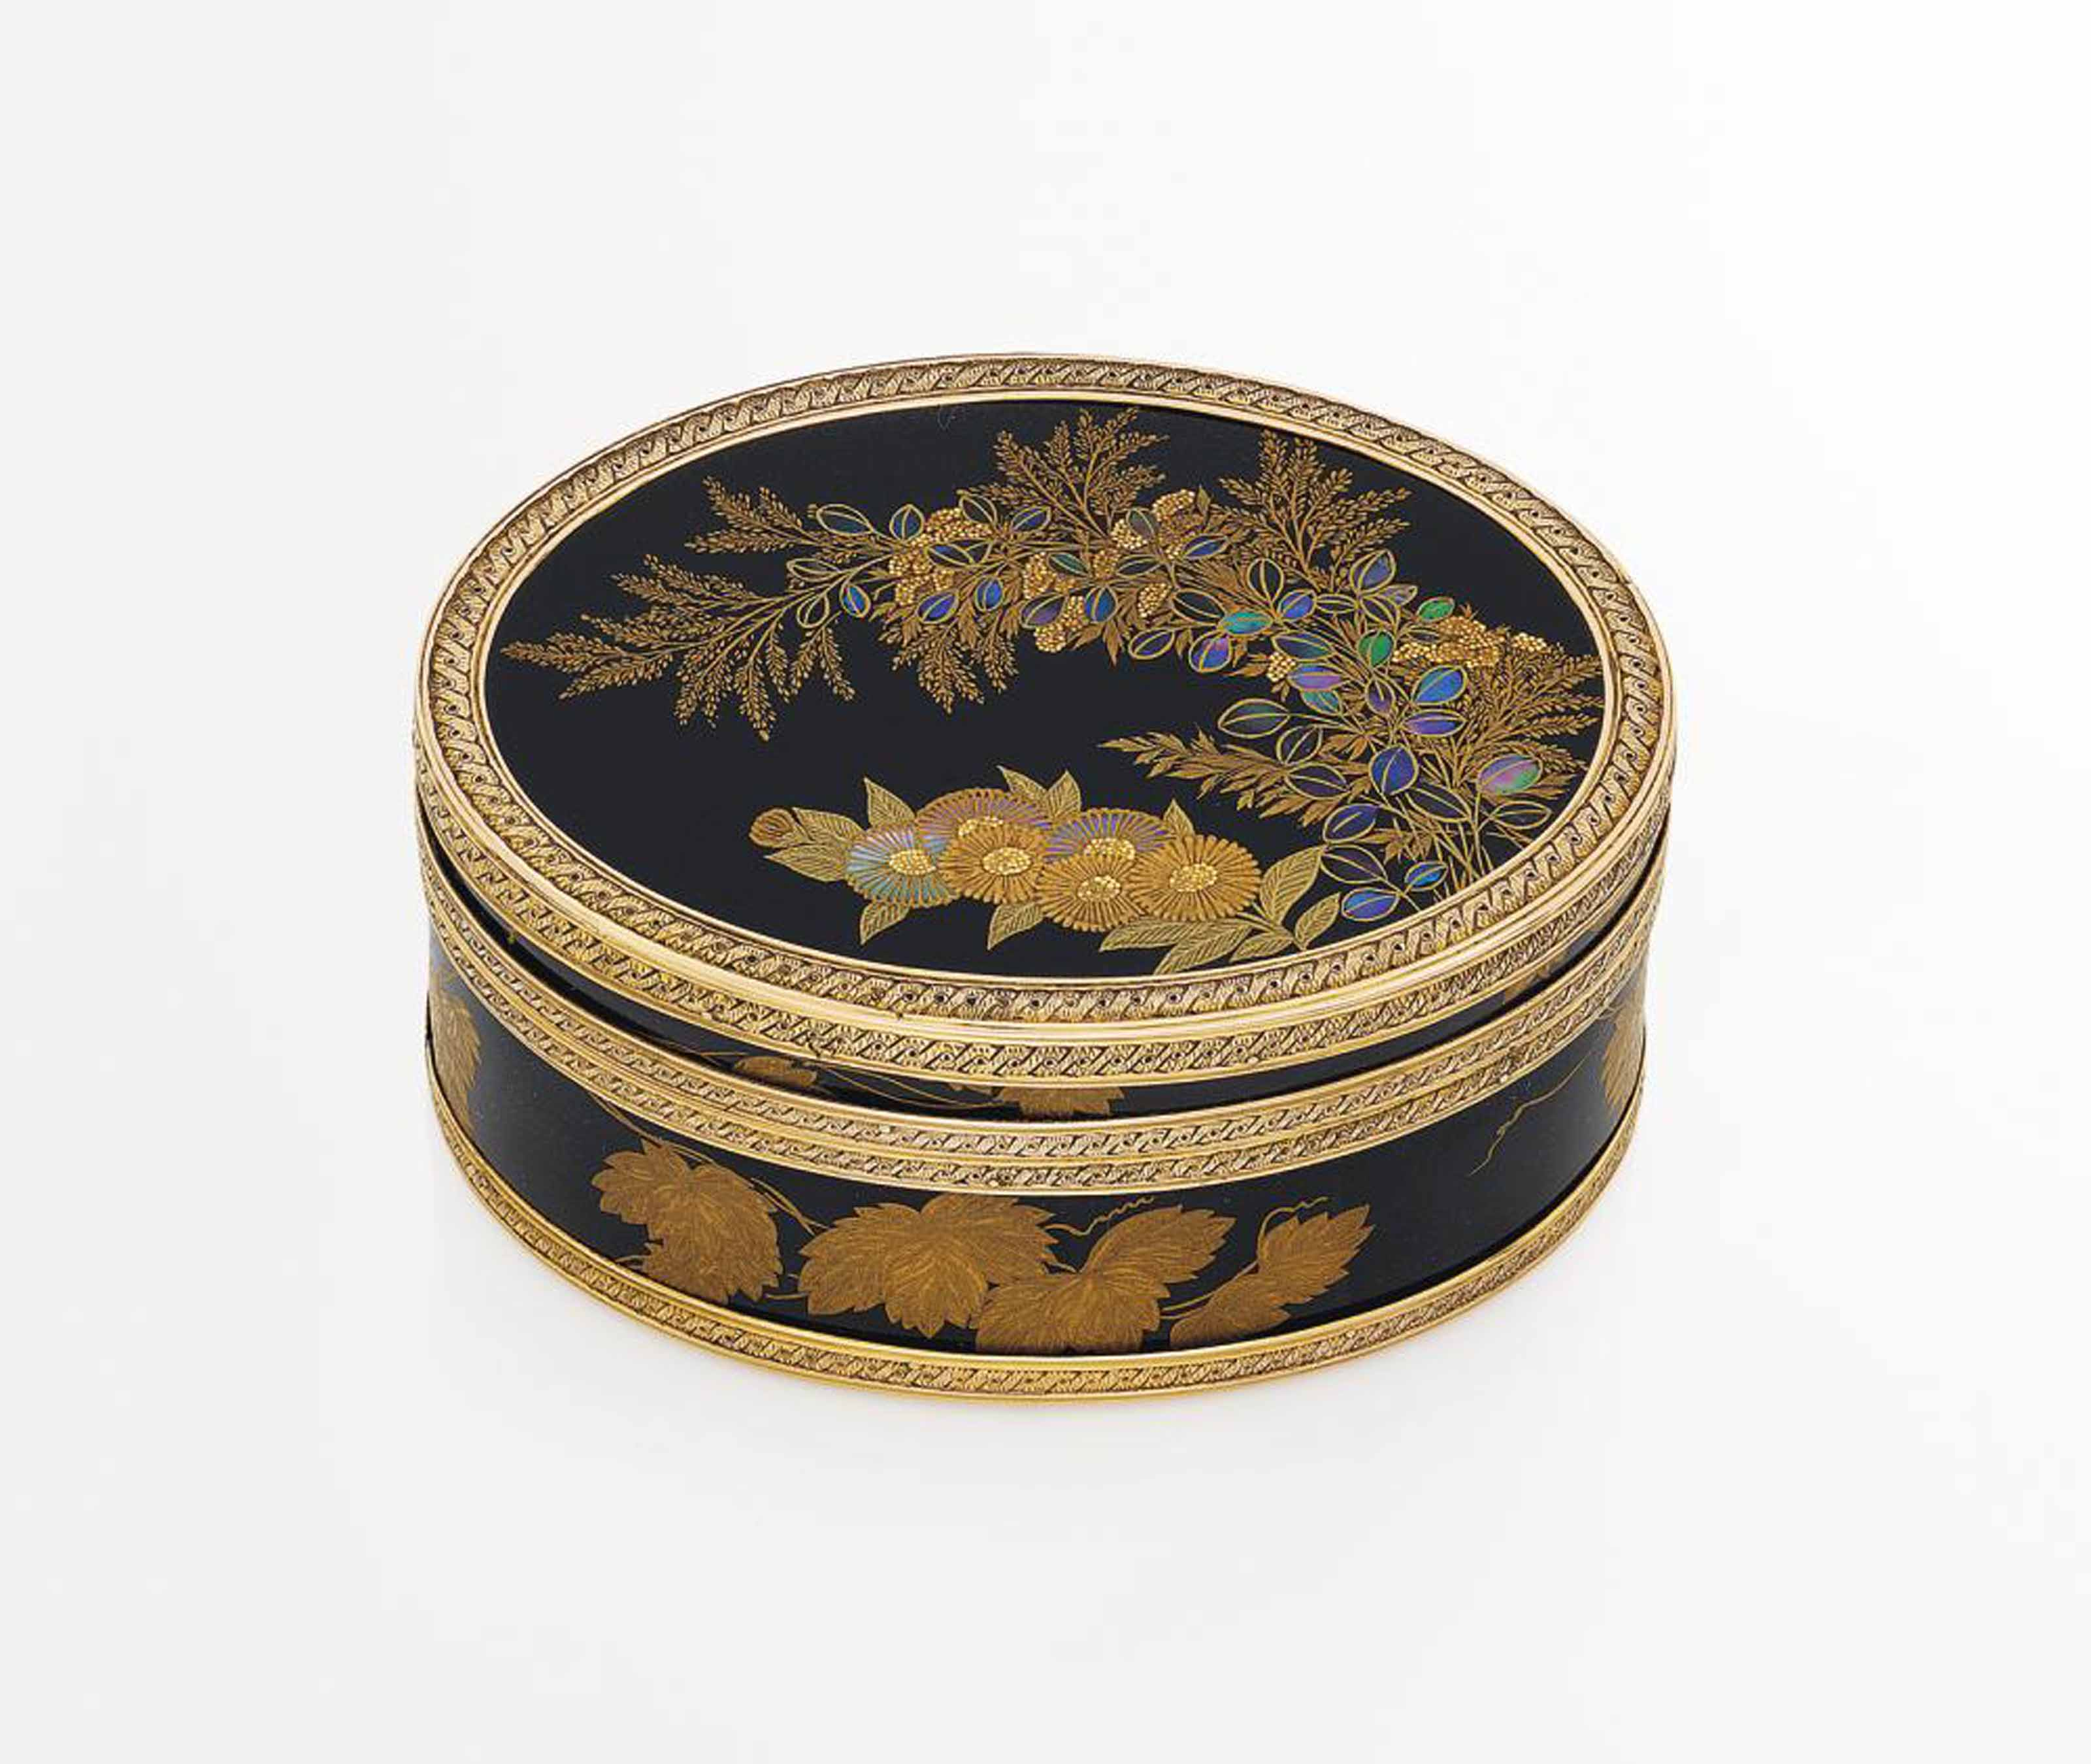 A LOUIS XV GOLD-MOUNTED LACQUER AND TORTOISESHELL SNUFF-BOX